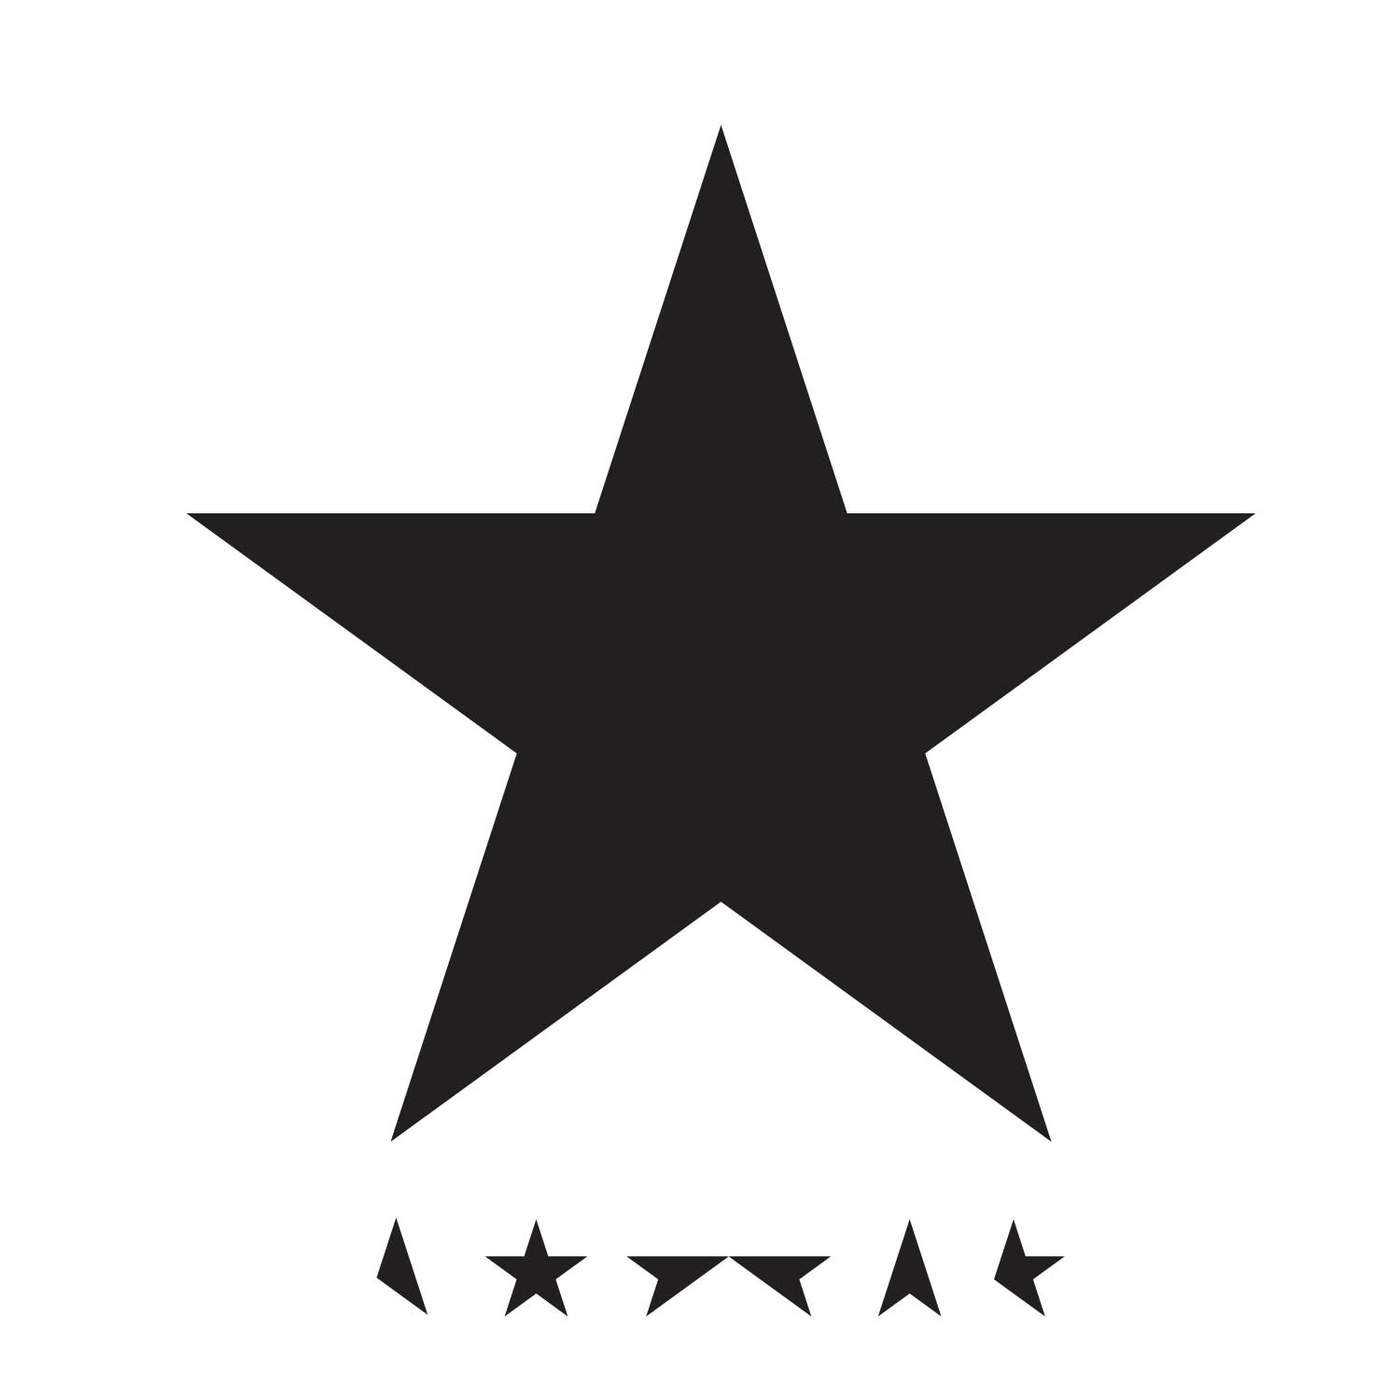 david bowie blackstar stream album listen Ranking: Every David Bowie Album from Worst to Best